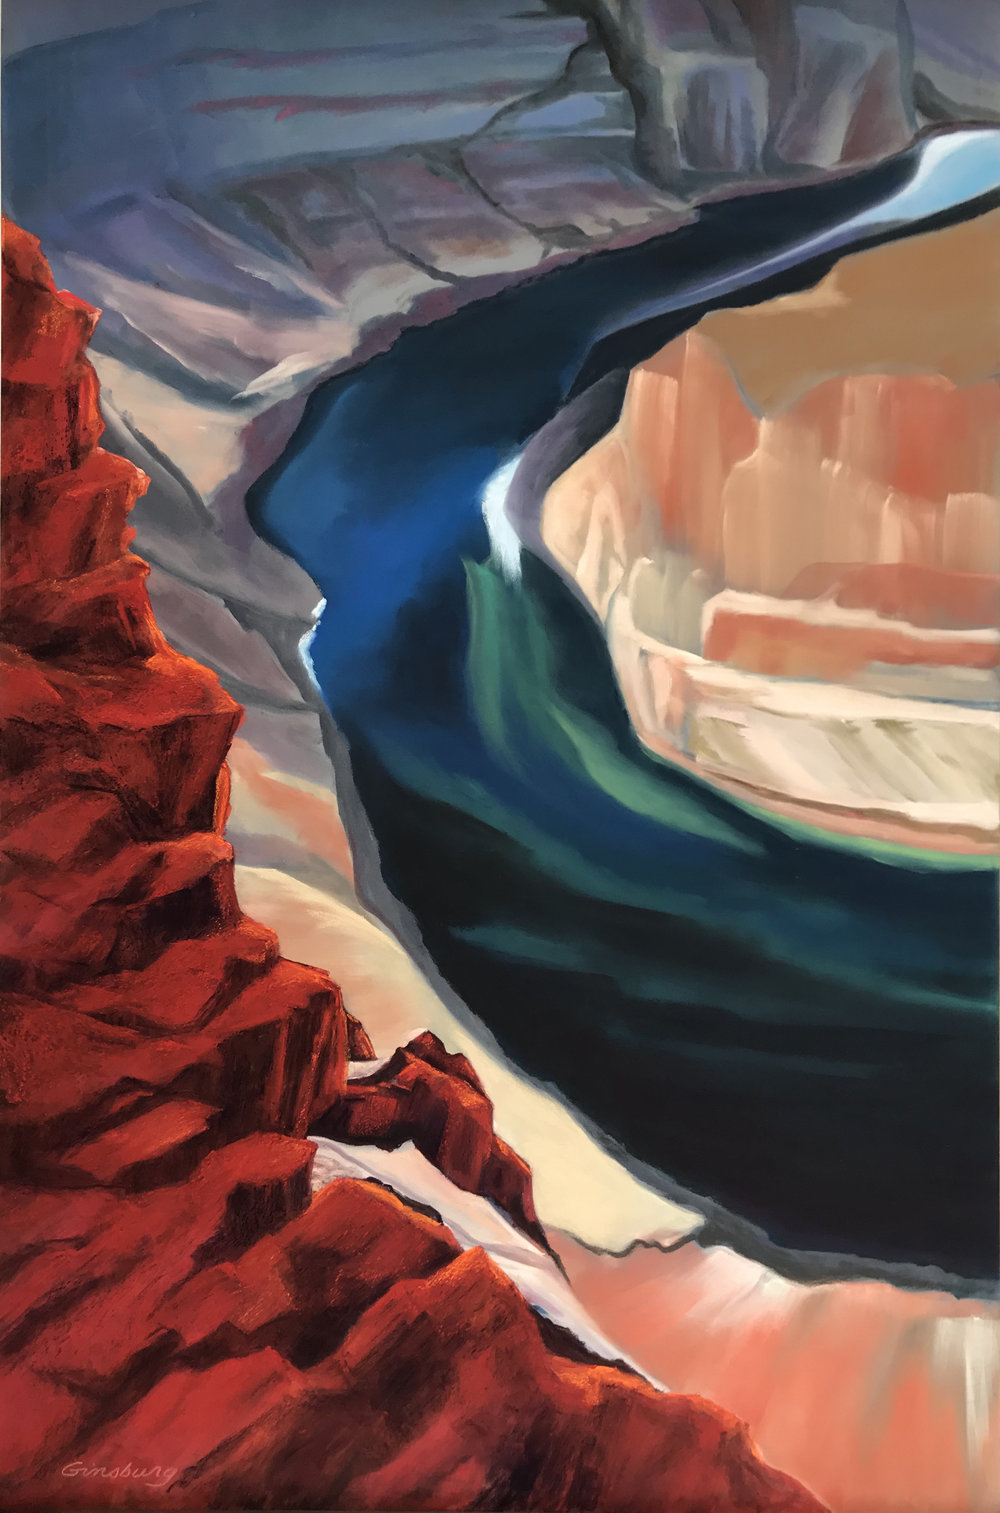 Jewel Of The Canyon  Horshoe Canyon, Arizona  24 x 36  PanPastel and Terry Ludwig Pastels on Ampersand Pastelbord  Cheri Ginsburg©